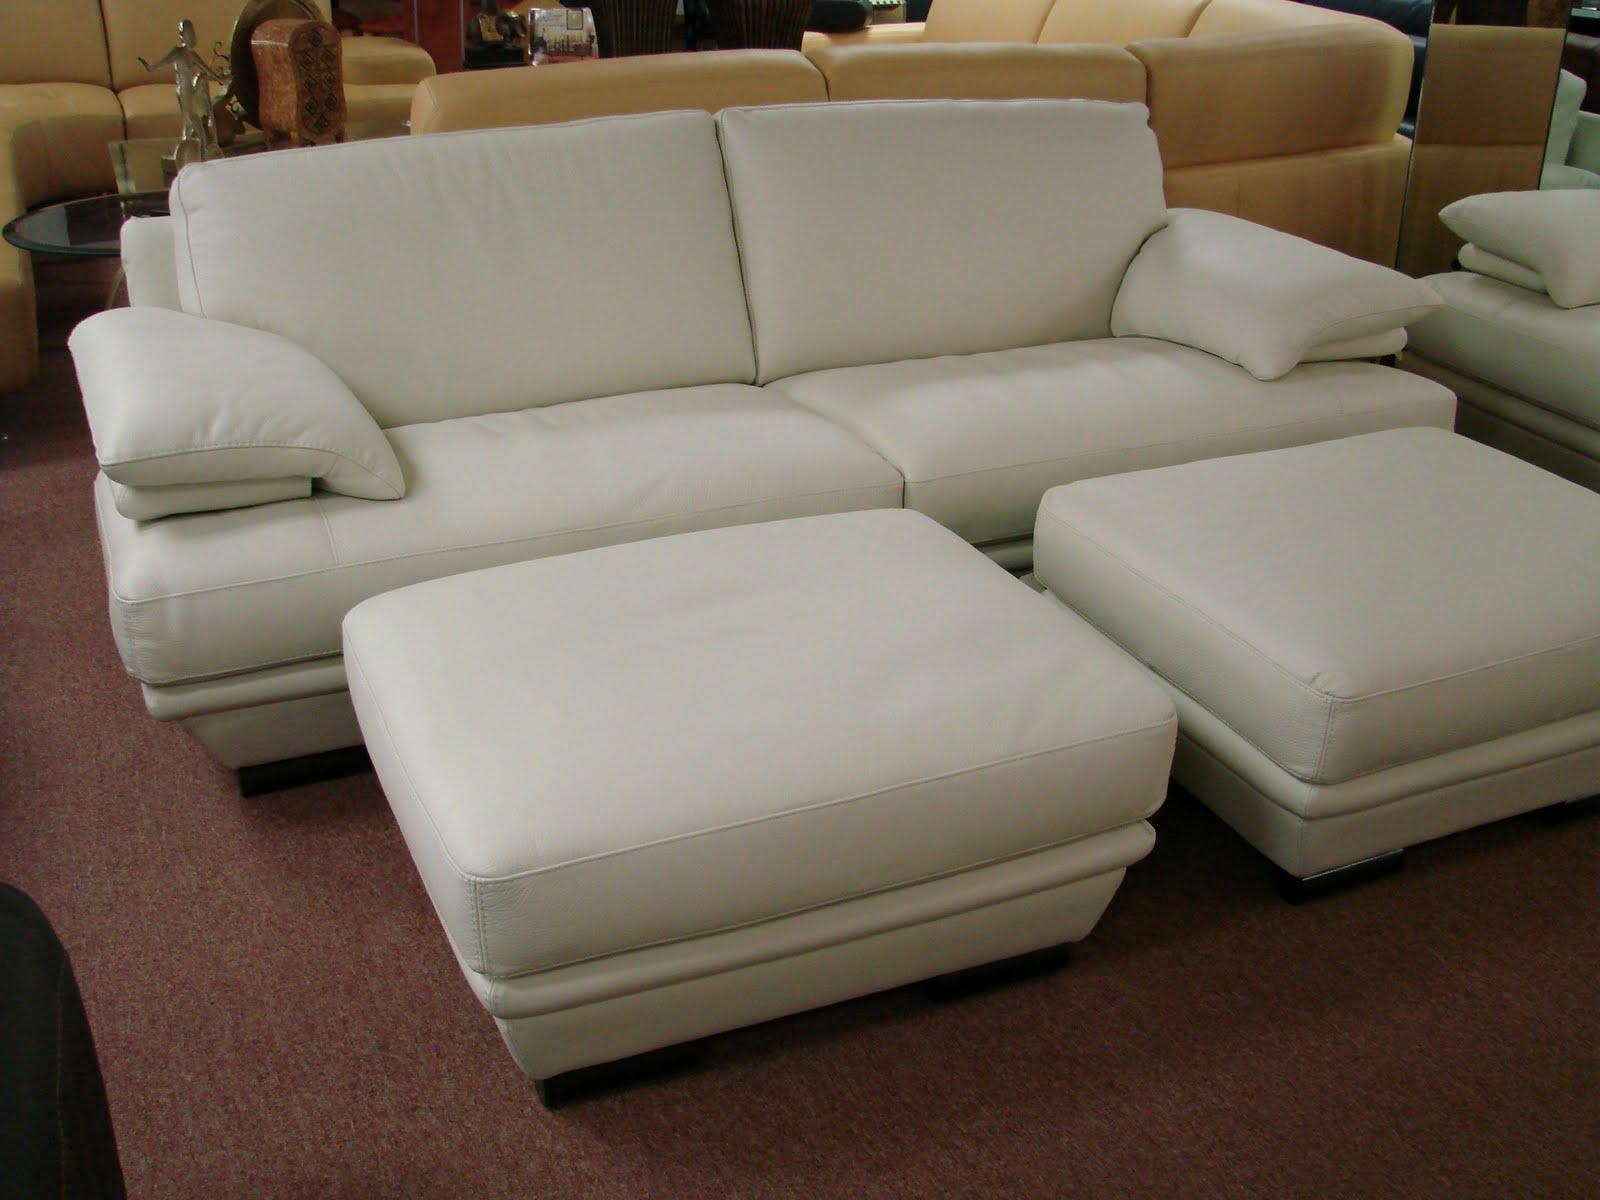 New Sofa White Leather 14 For Your Sofas And Couches Ideas With Inside White Leather Sofas (View 17 of 20)